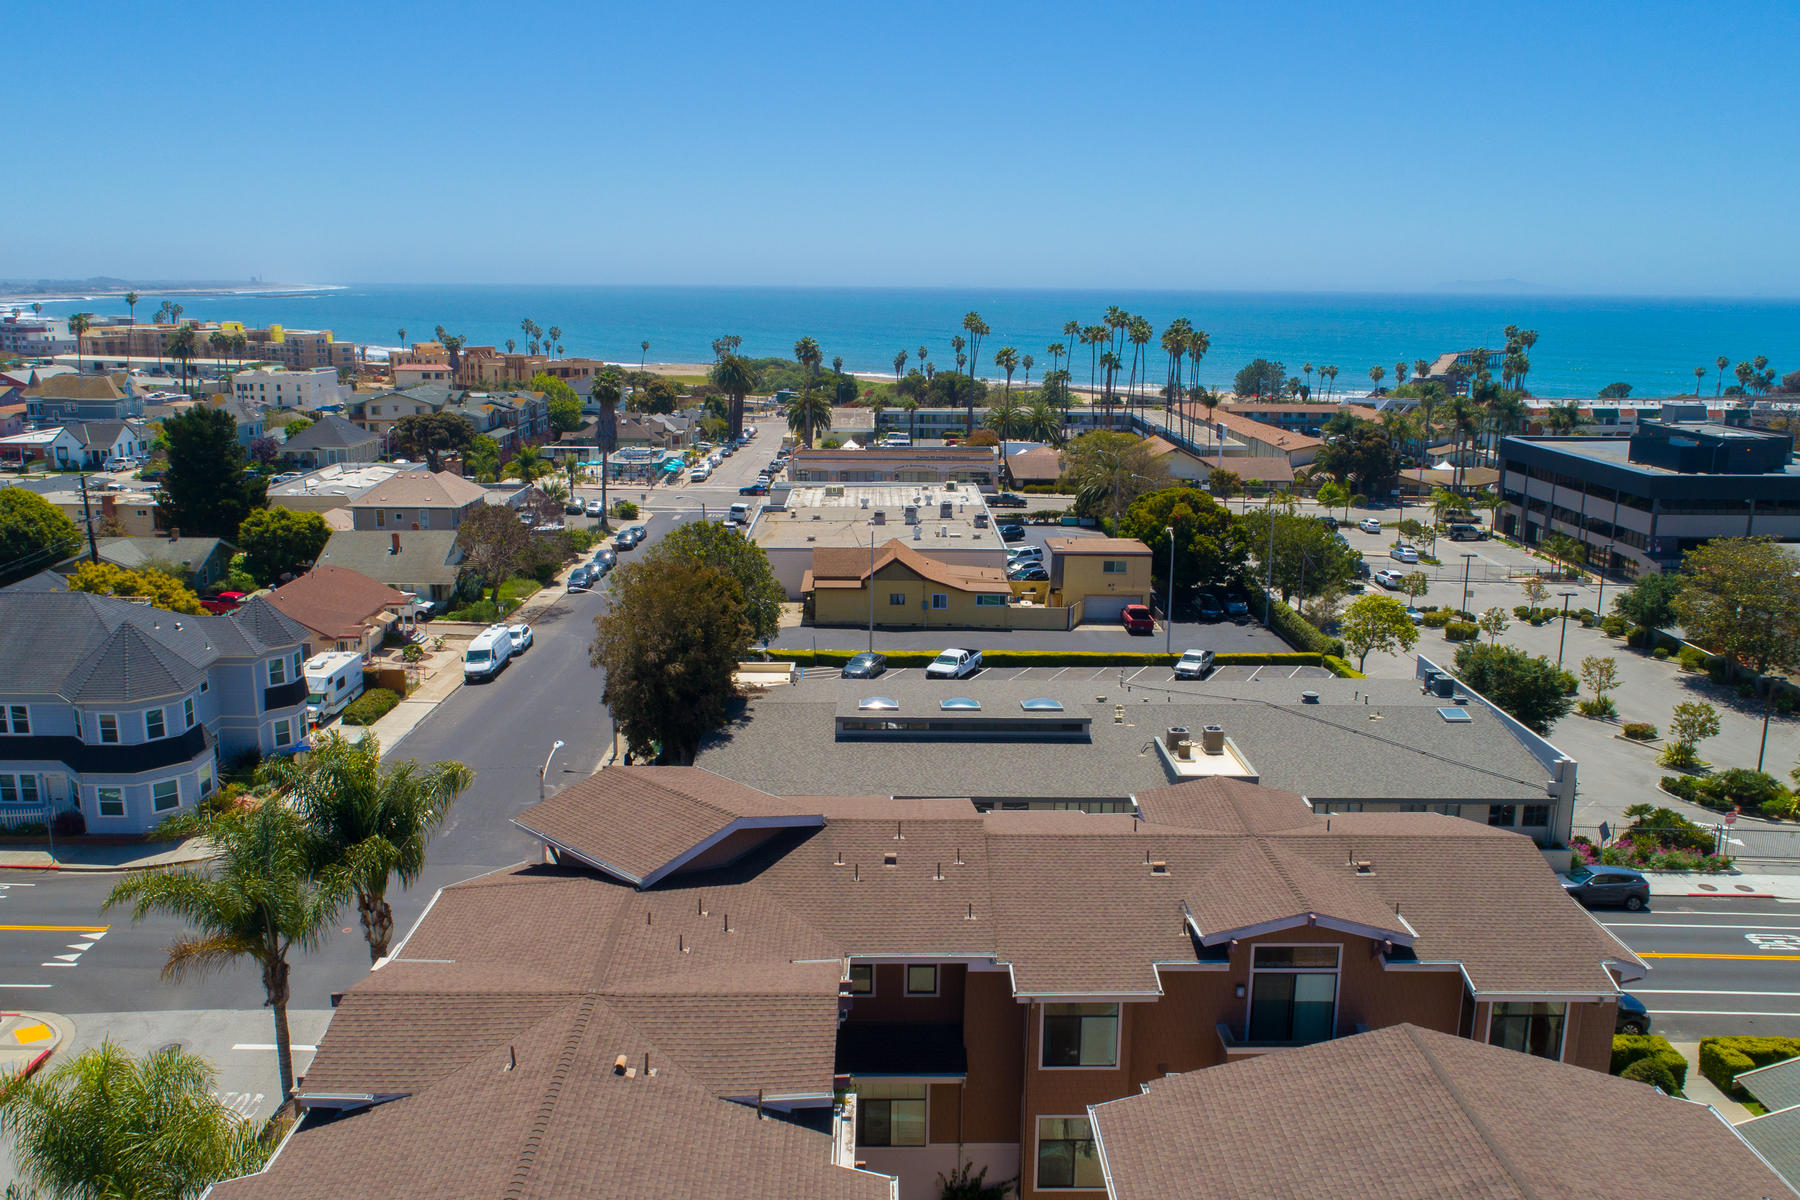 for Sale at The Mayfair Lofts in Downtown Ventura 797 E Santa Clara Street Ventura, California 93001 United States